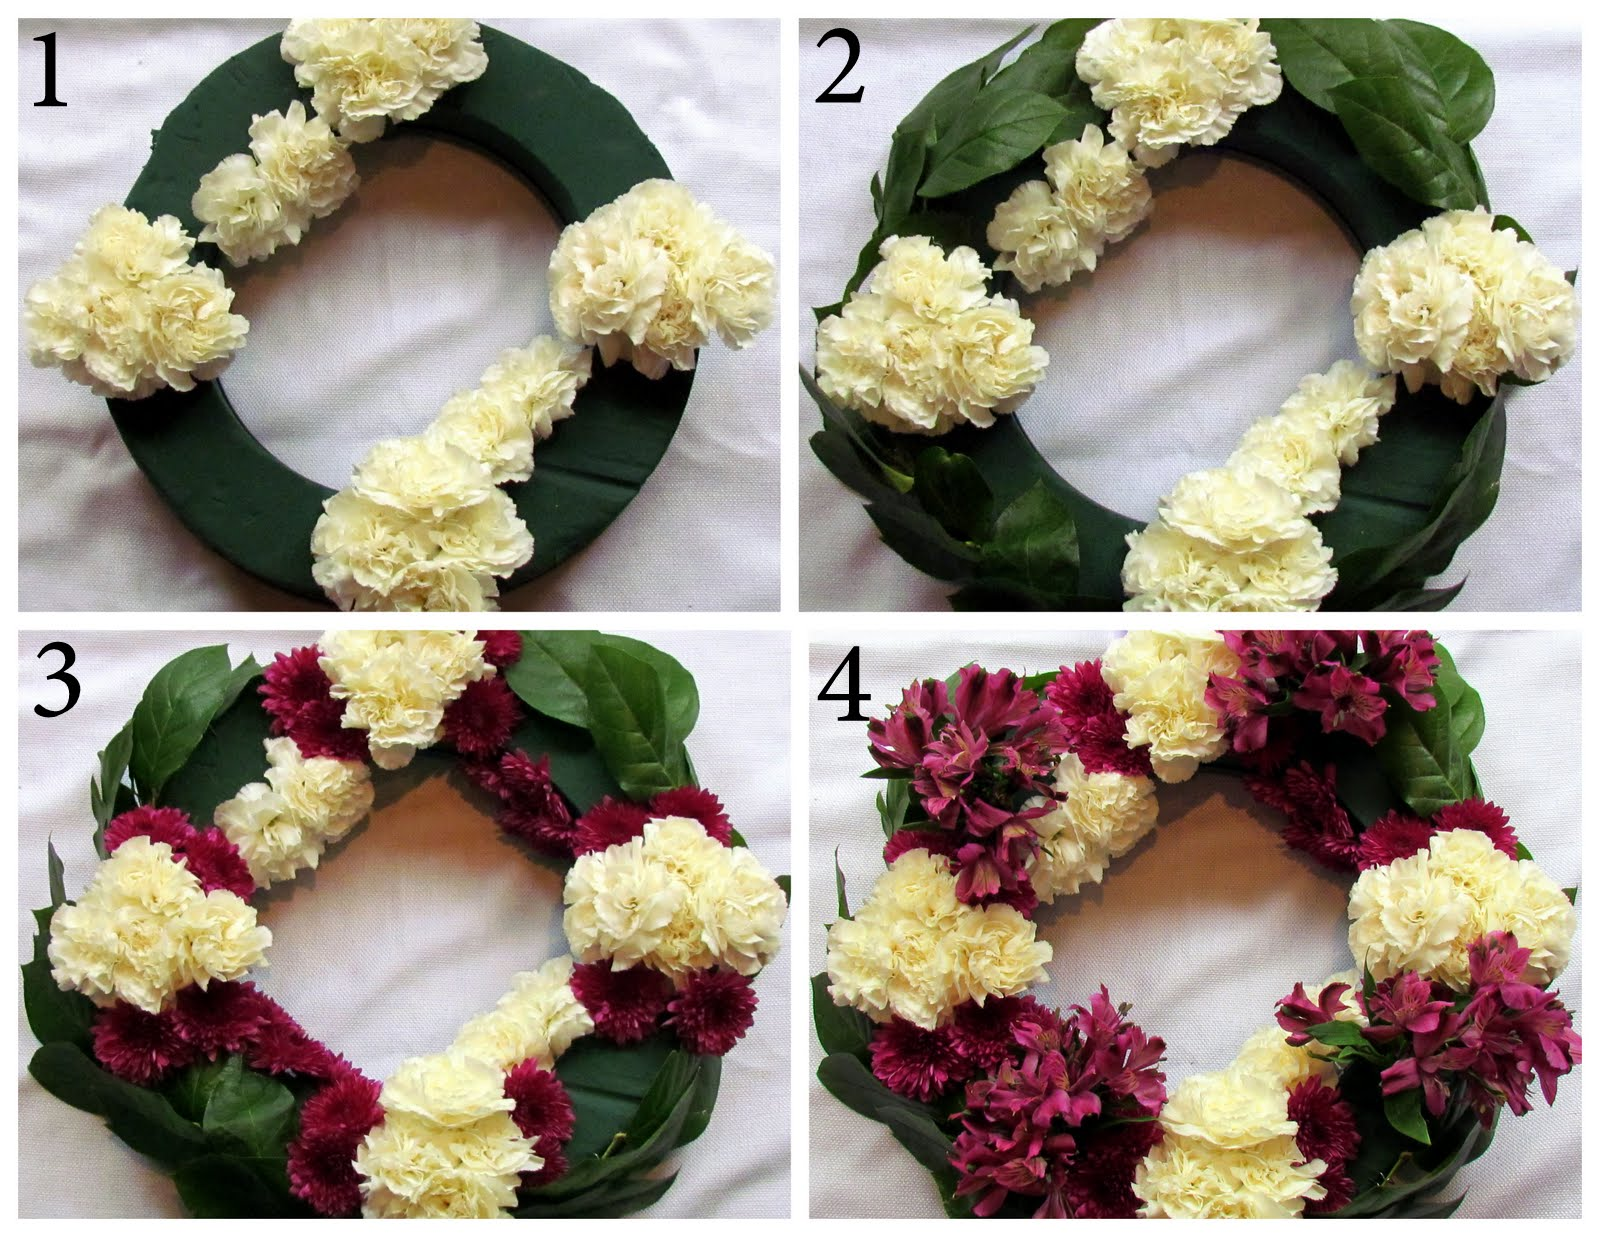 Fresh flower wreathjcs loft the csi project i started by making punches of white carnations around the wreath next i took my greenery and stuck them around the outside of the wreath izmirmasajfo